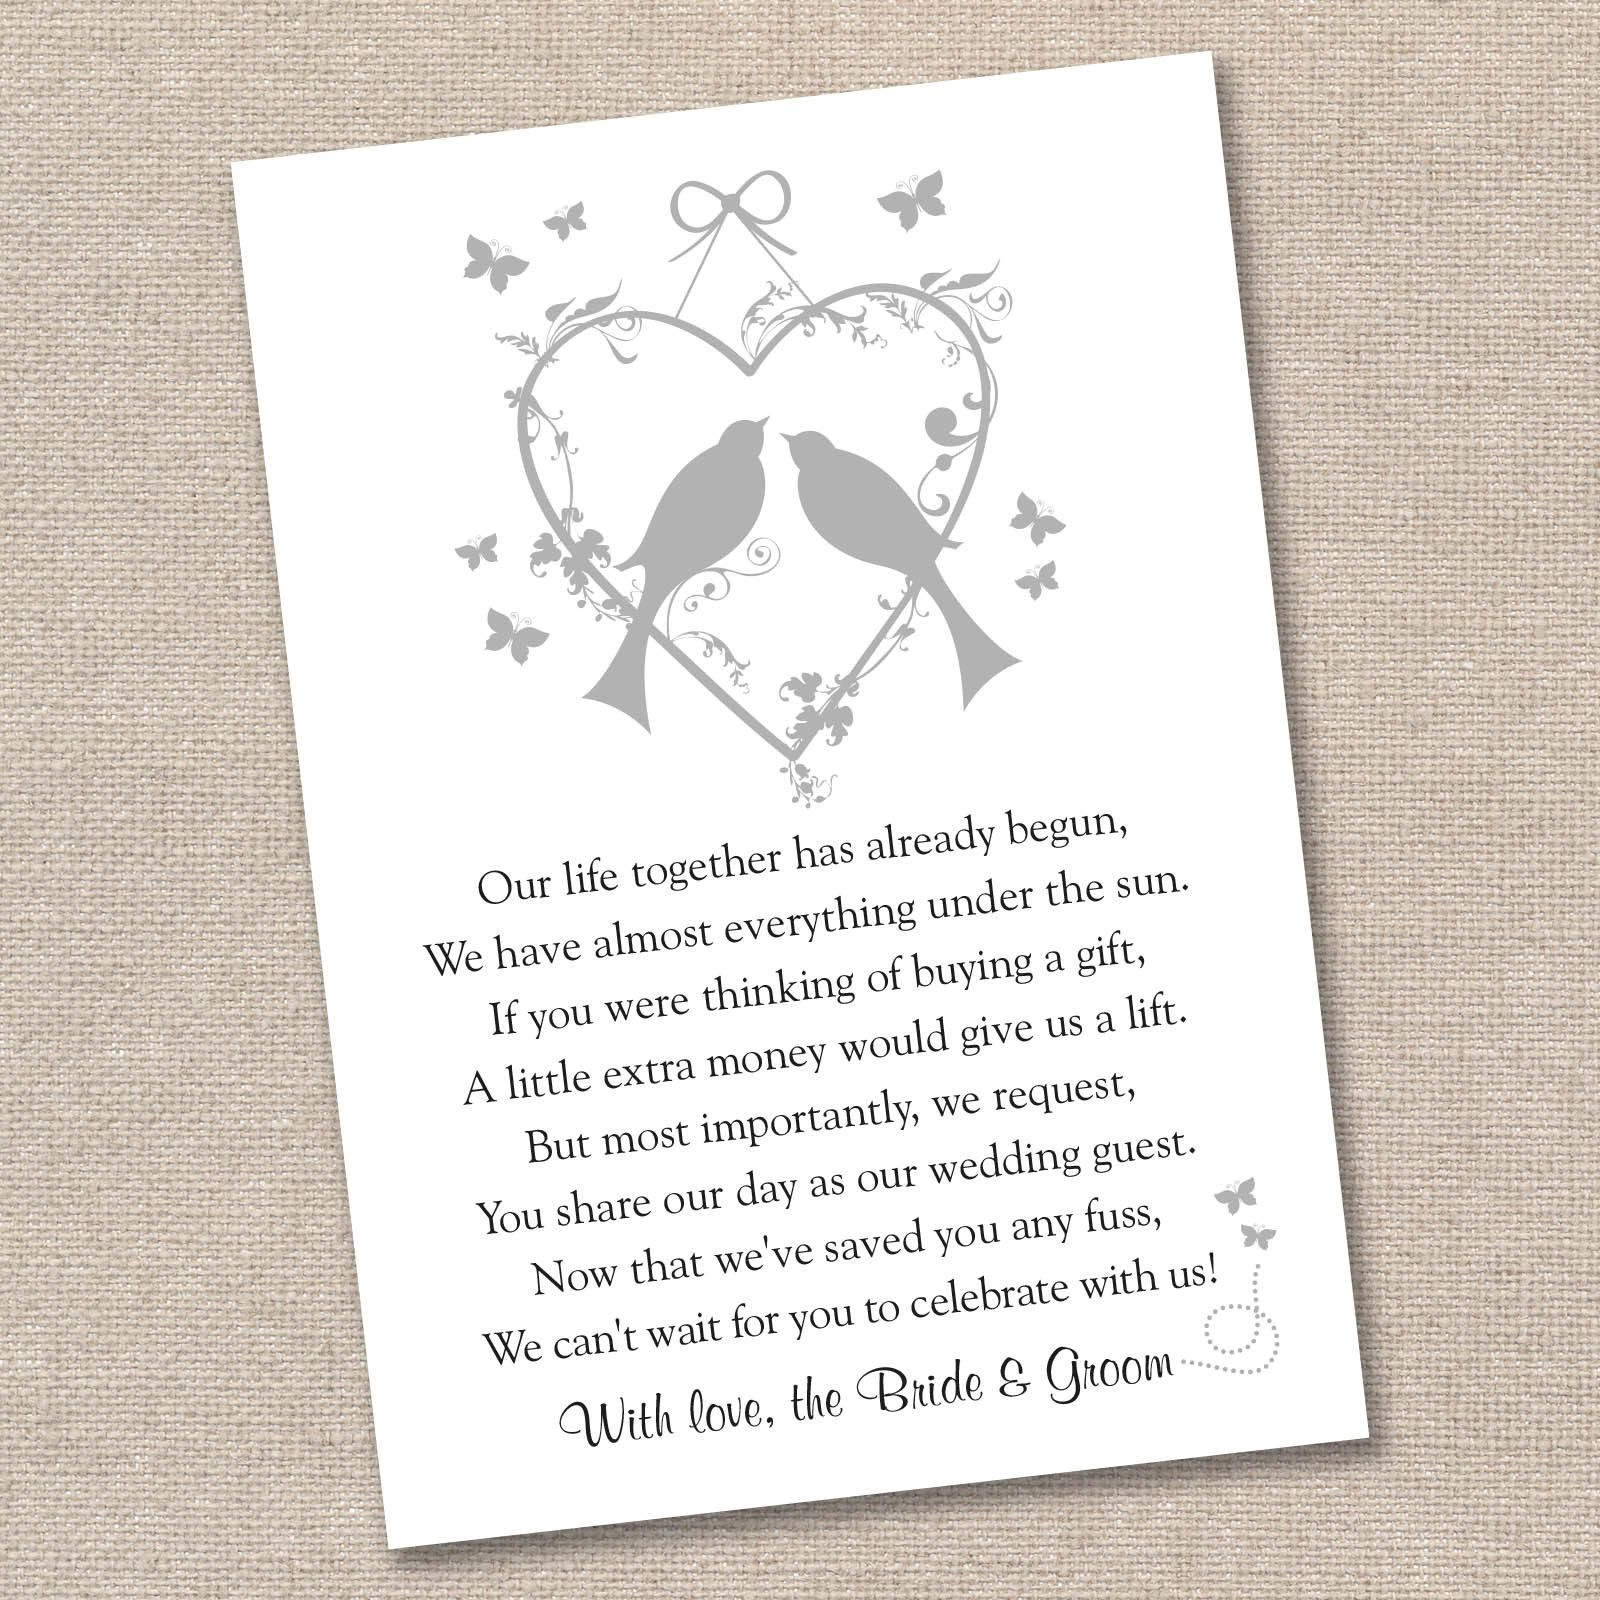 25 x Vintage Lovebirds Wedding Poem Cards For Your Invitations Money ...